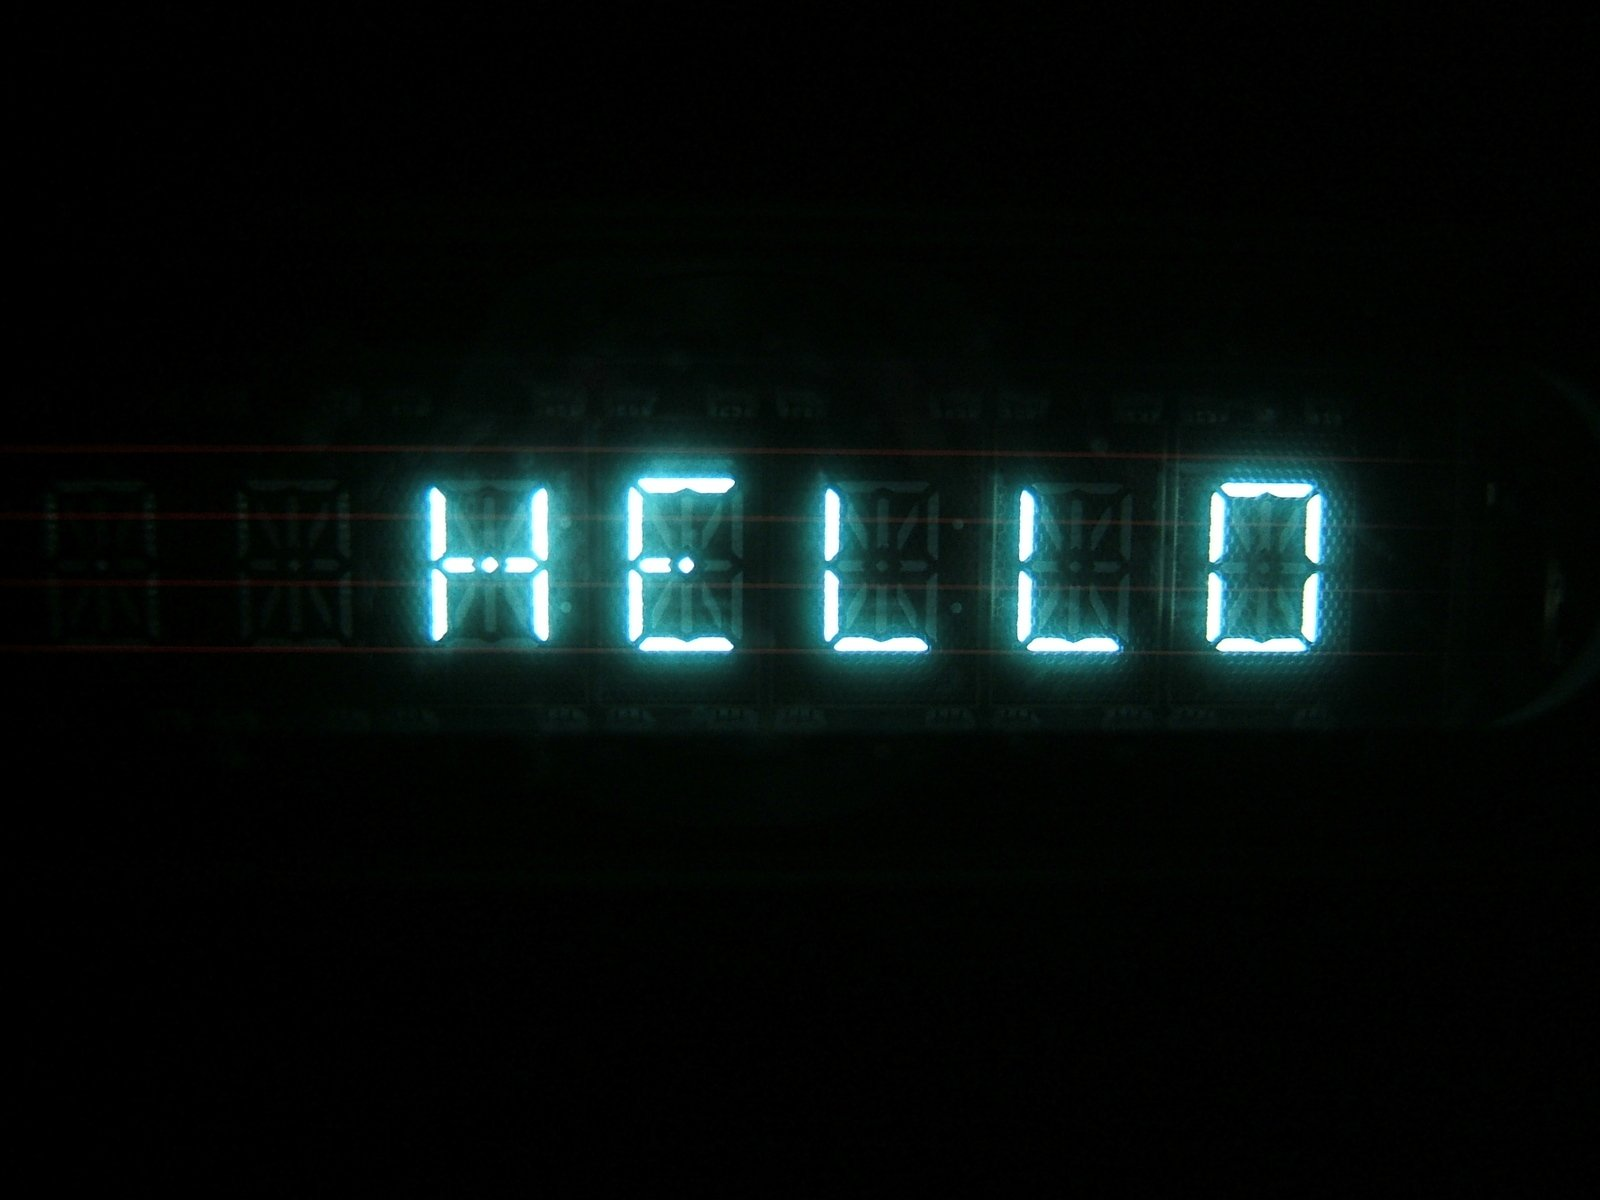 Digital hello